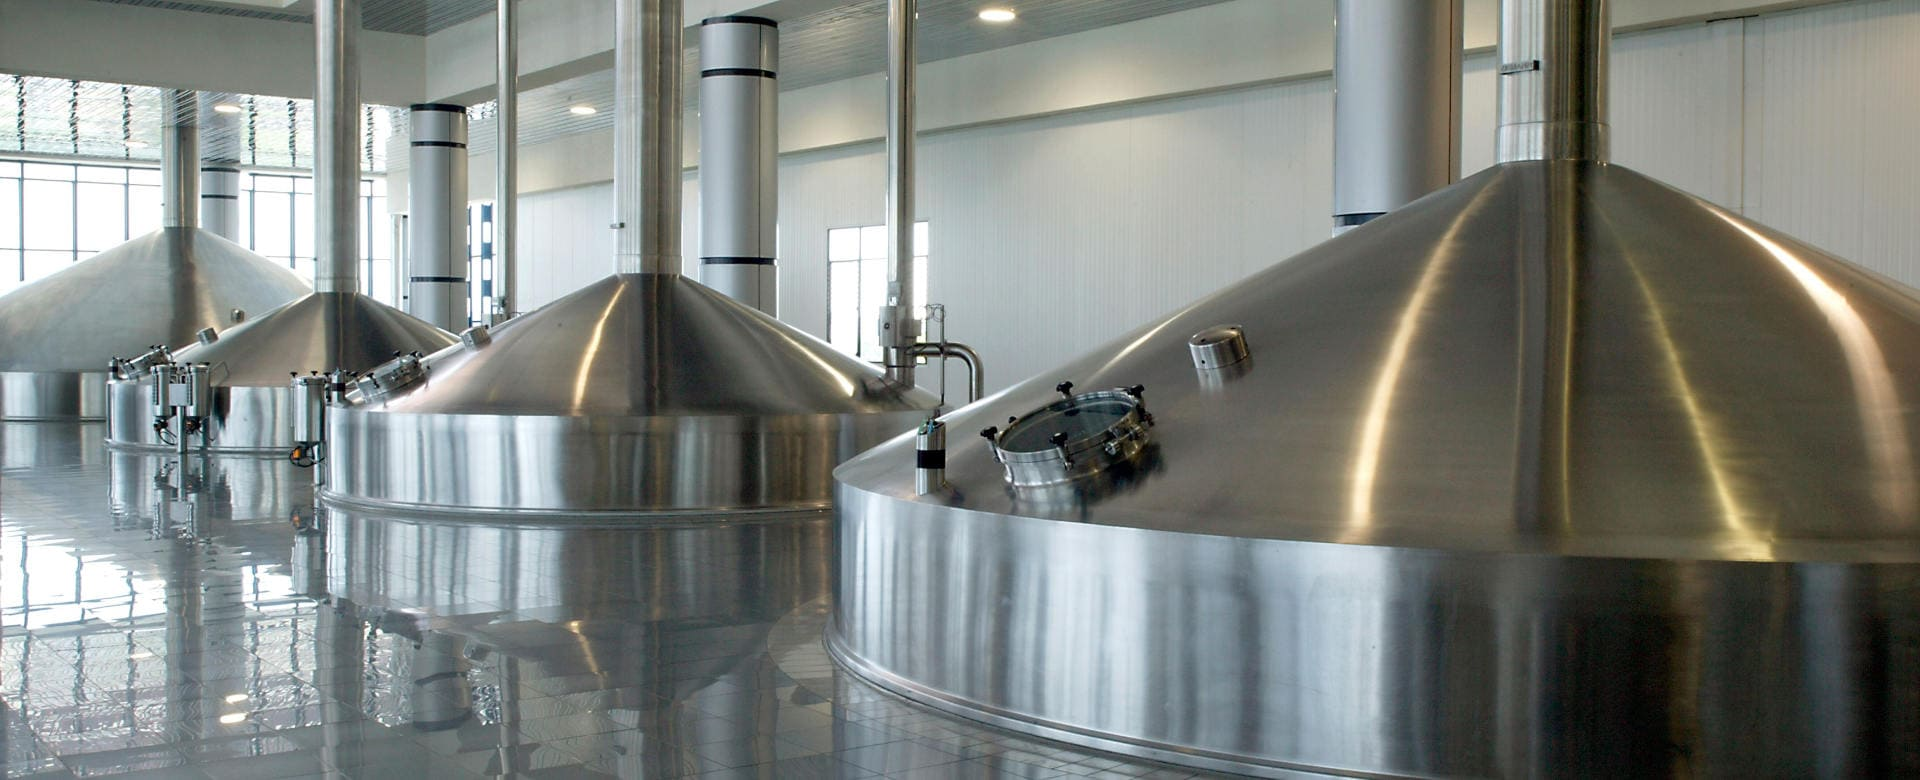 Brewhouse 1920x780